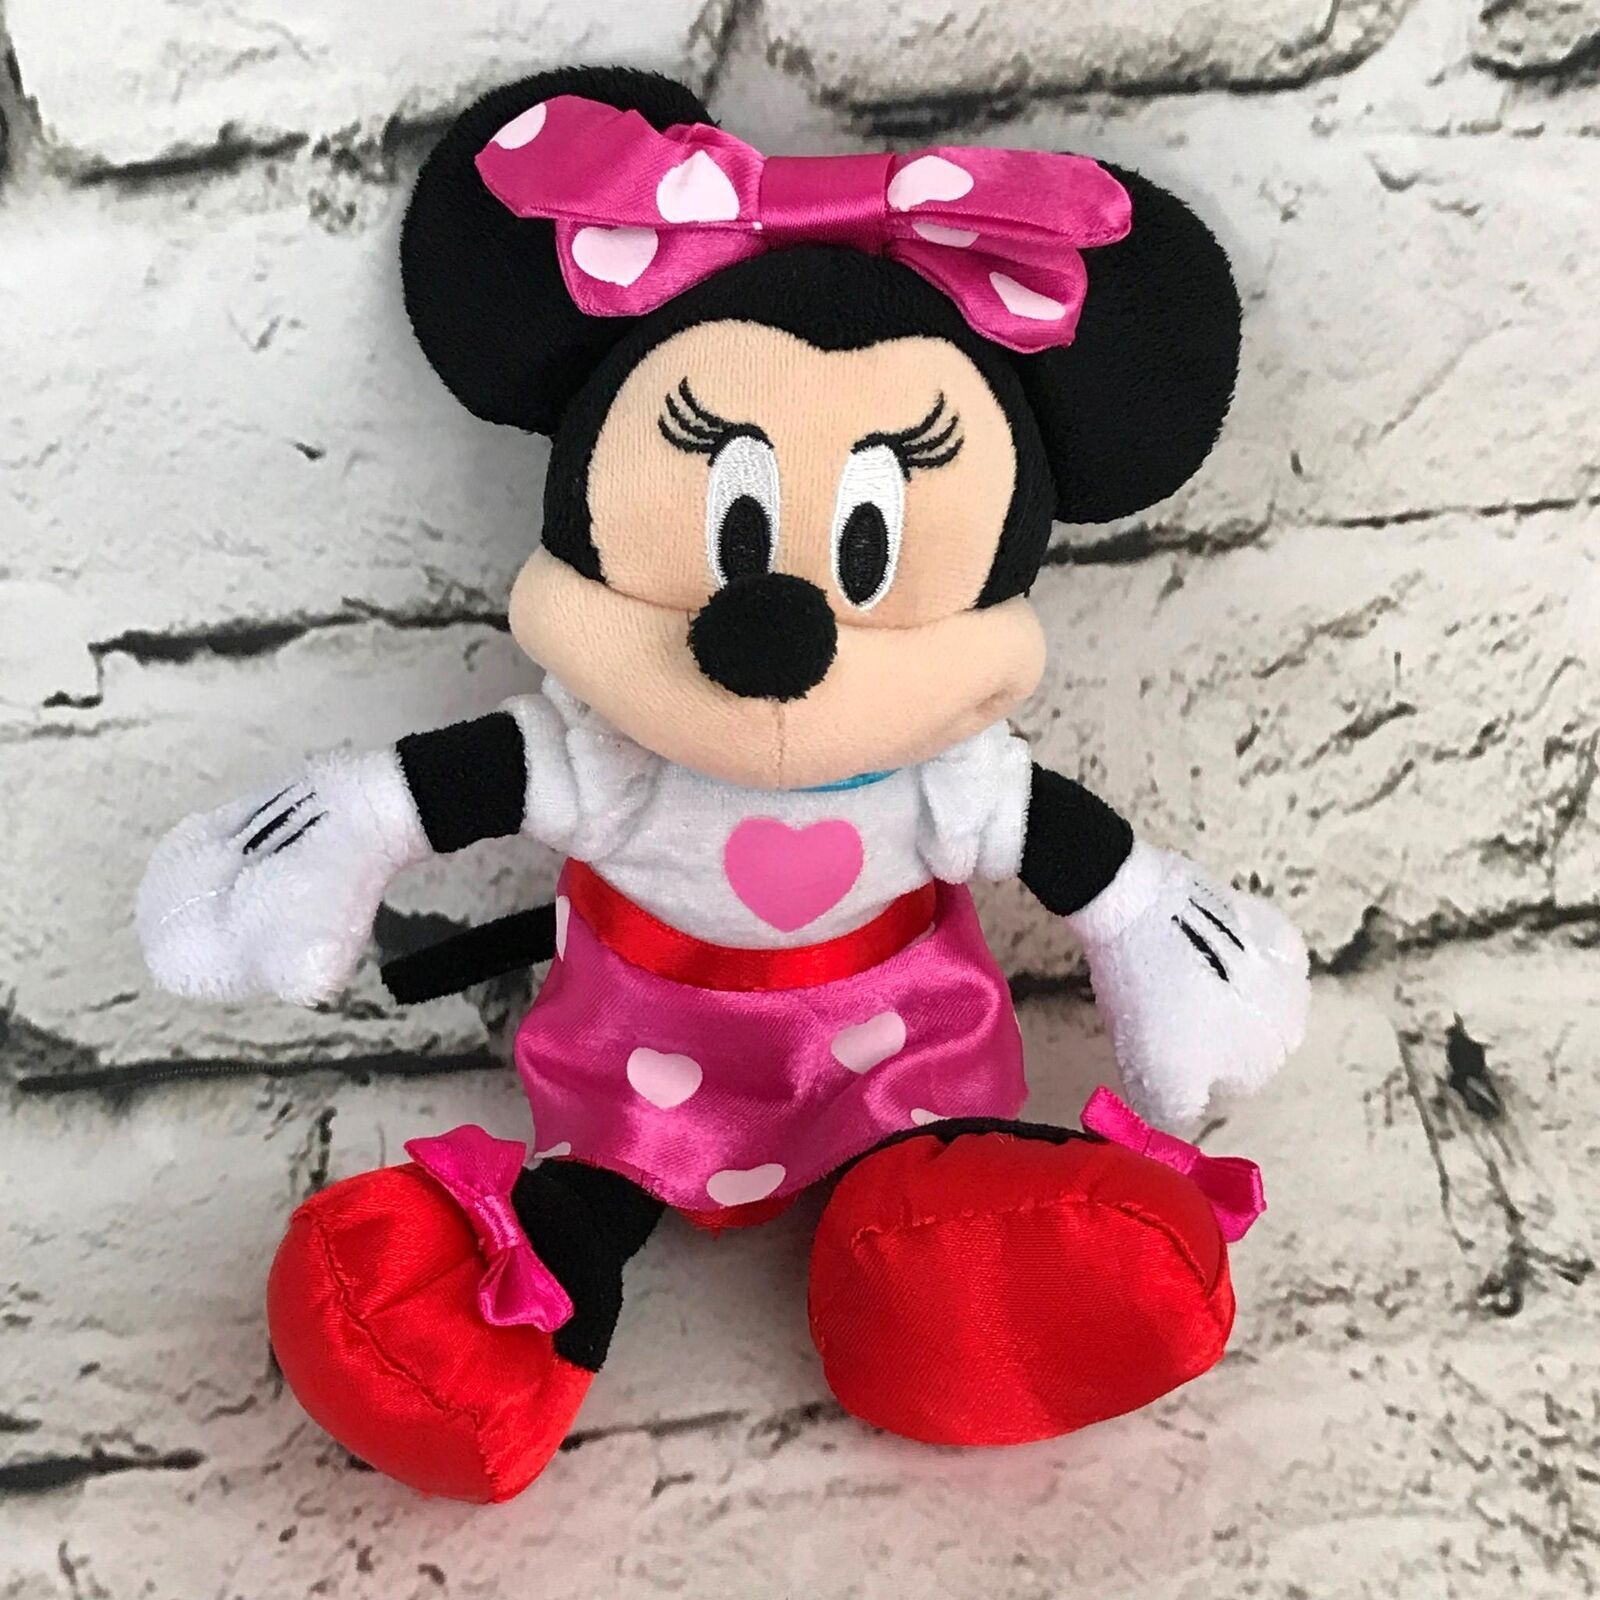 Primary image for Disney Minnie Mouse Plush Doll Pink Polka Dot Heart Stuffed Animal Soft Toy